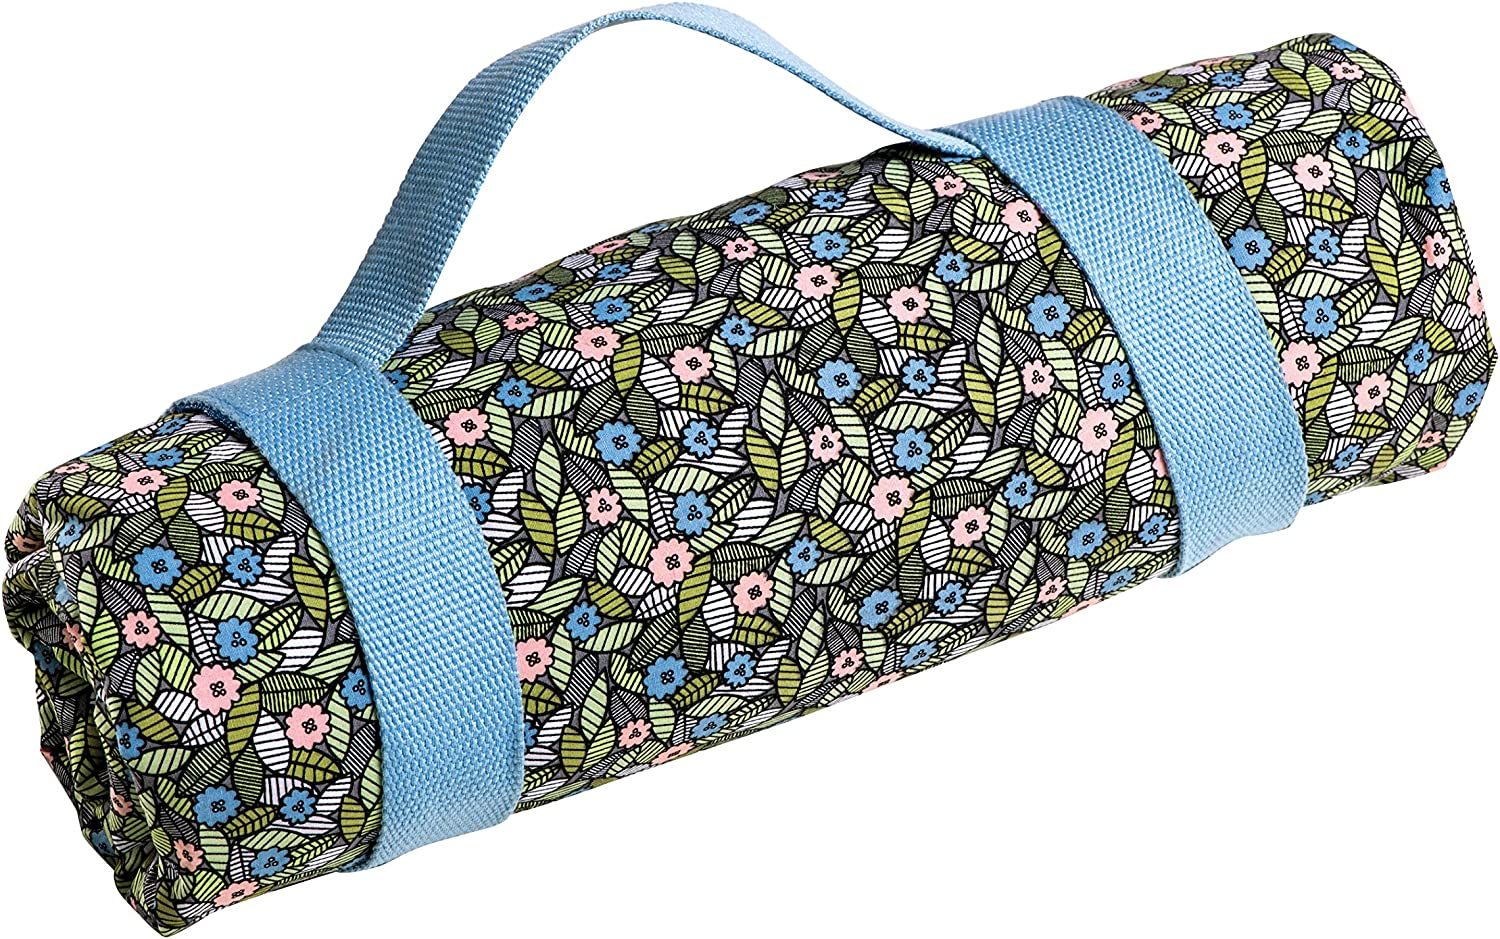 Multi-colour Premier Housewares Finchwood Felicity Gardening Tool Bag